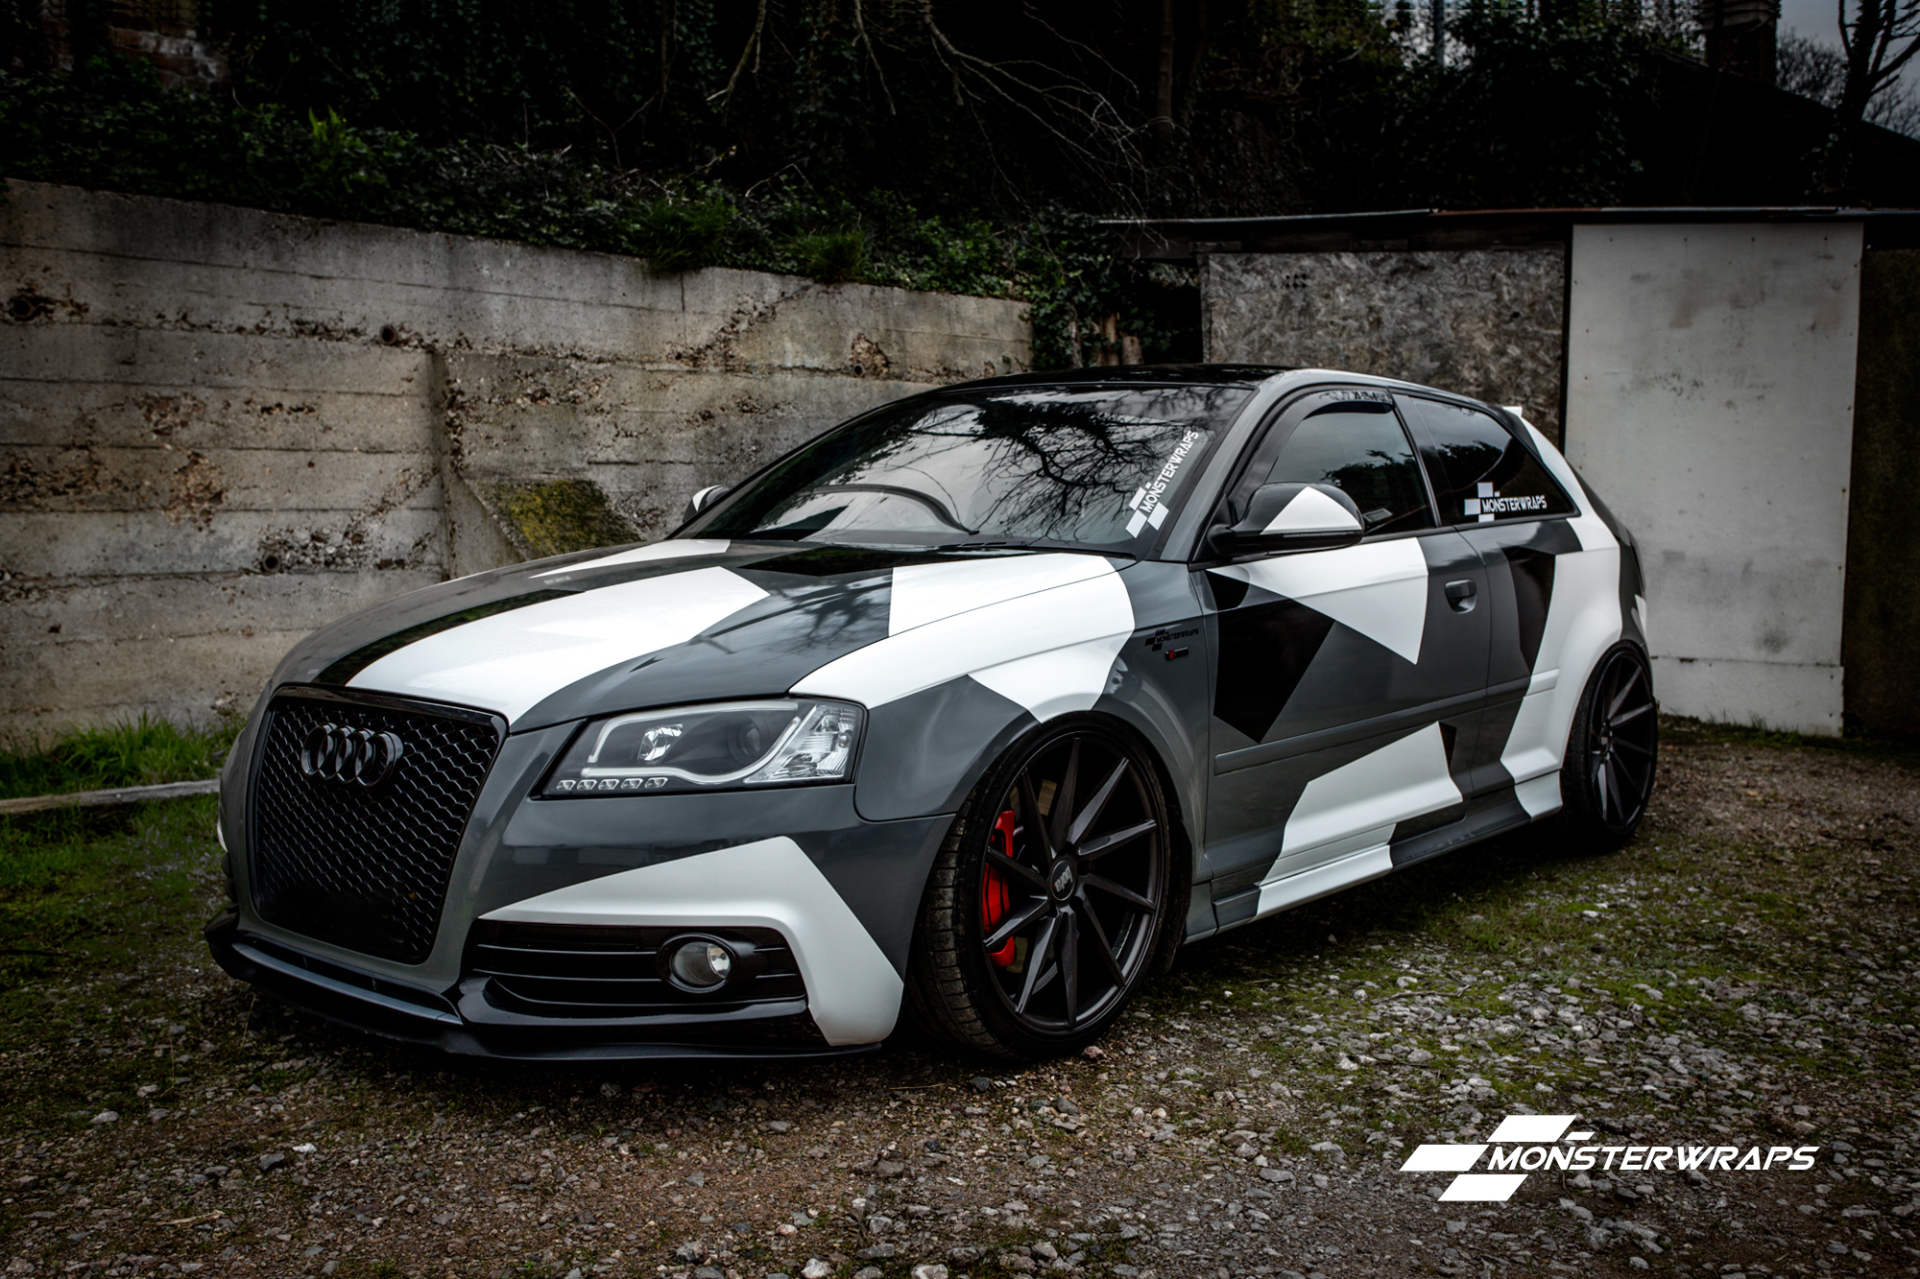 Audi A3 Stealth Grey camo wrap